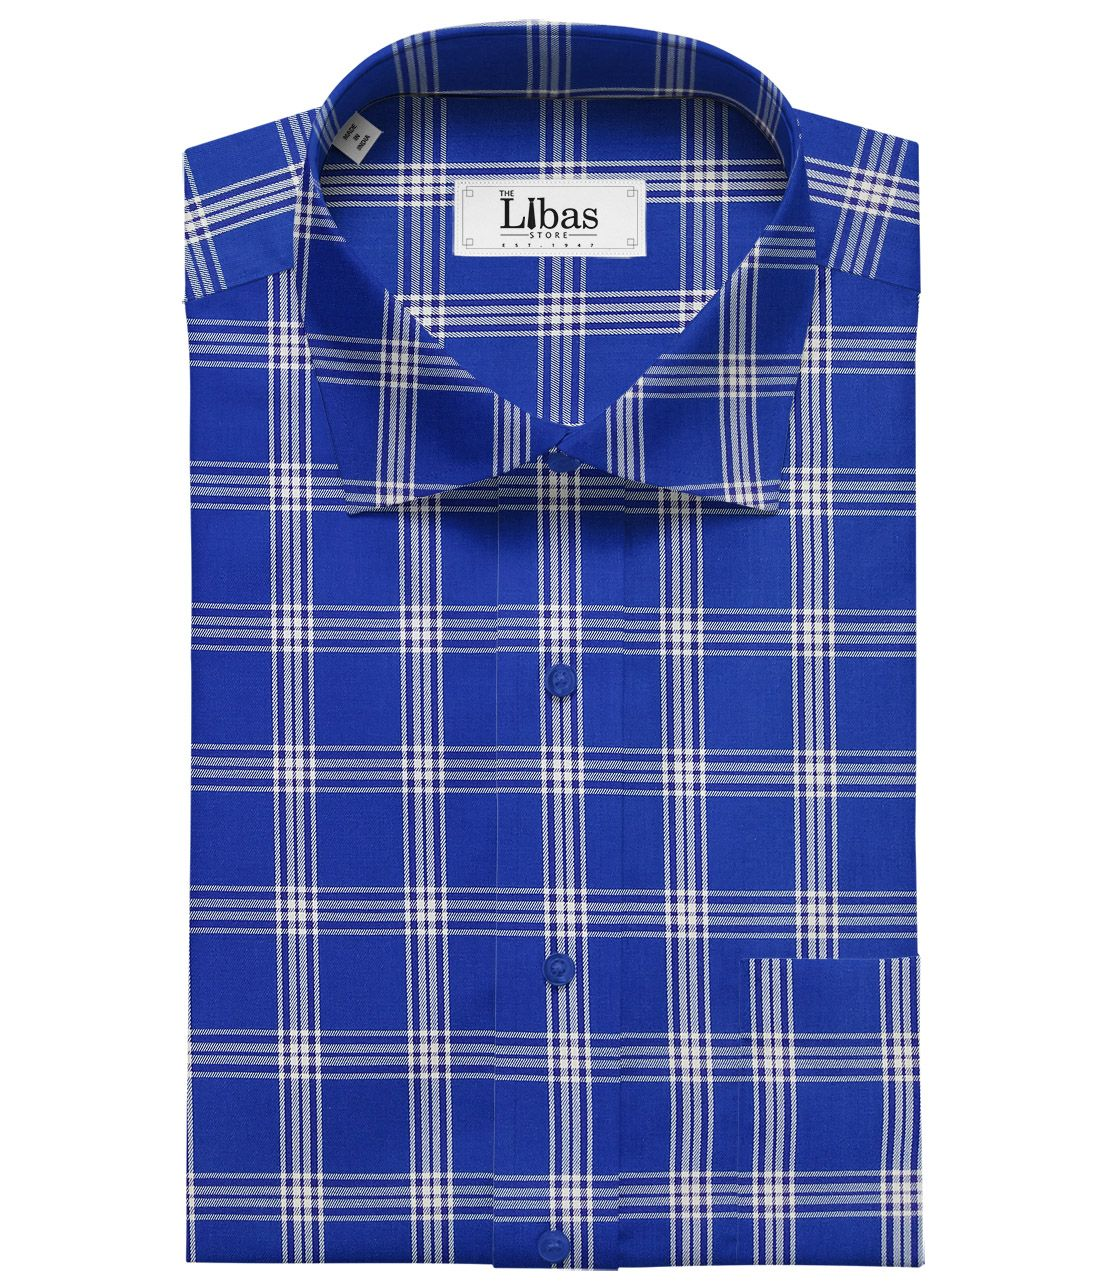 921cfca5 Cadini Italy by Siyaram's Royal Blue 100% Giza Cotton Broad Checks Shirt  Fabric (1.60 M)